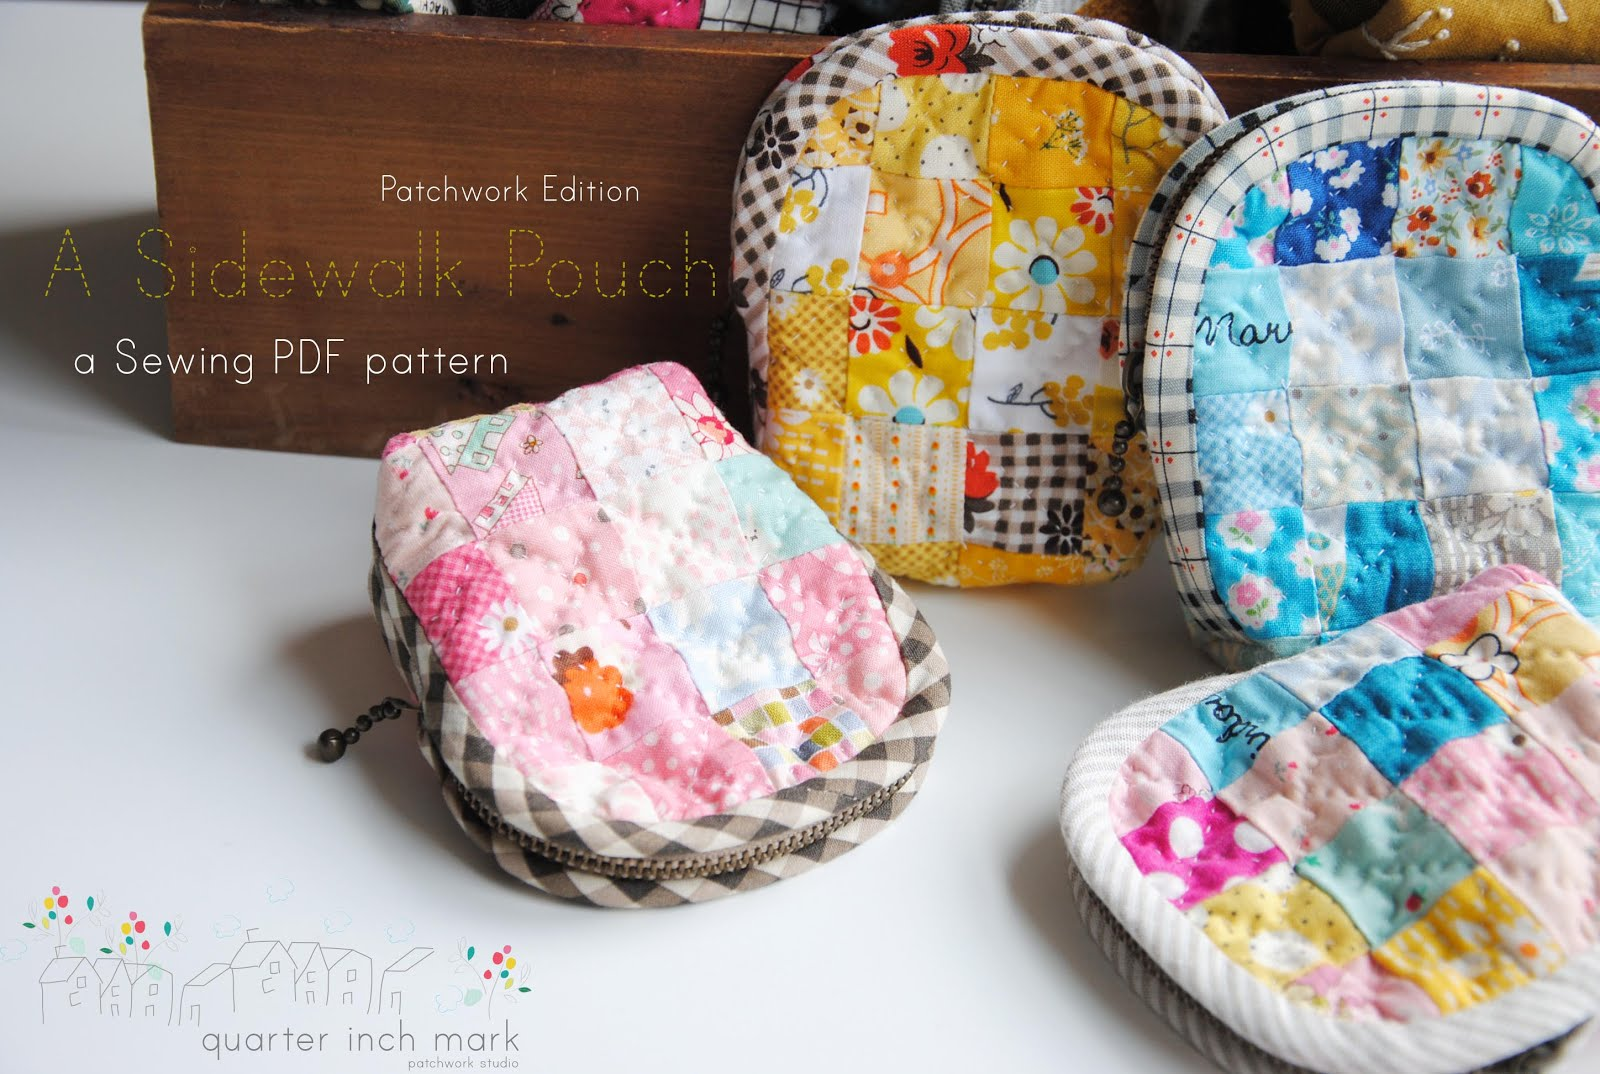 A Sidewalk Pouch Sewing Pattern